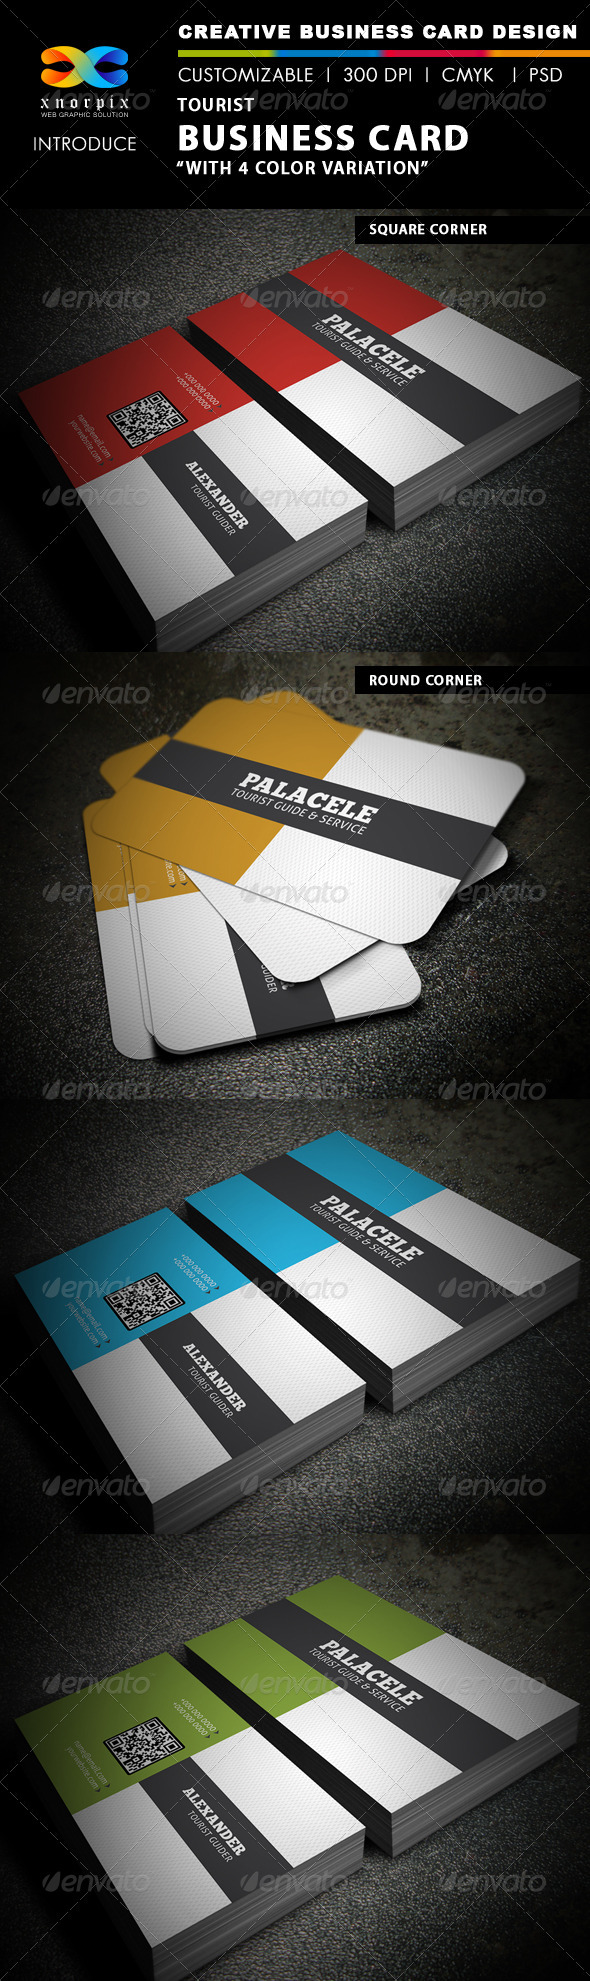 Tourist Business Card - Creative Business Cards